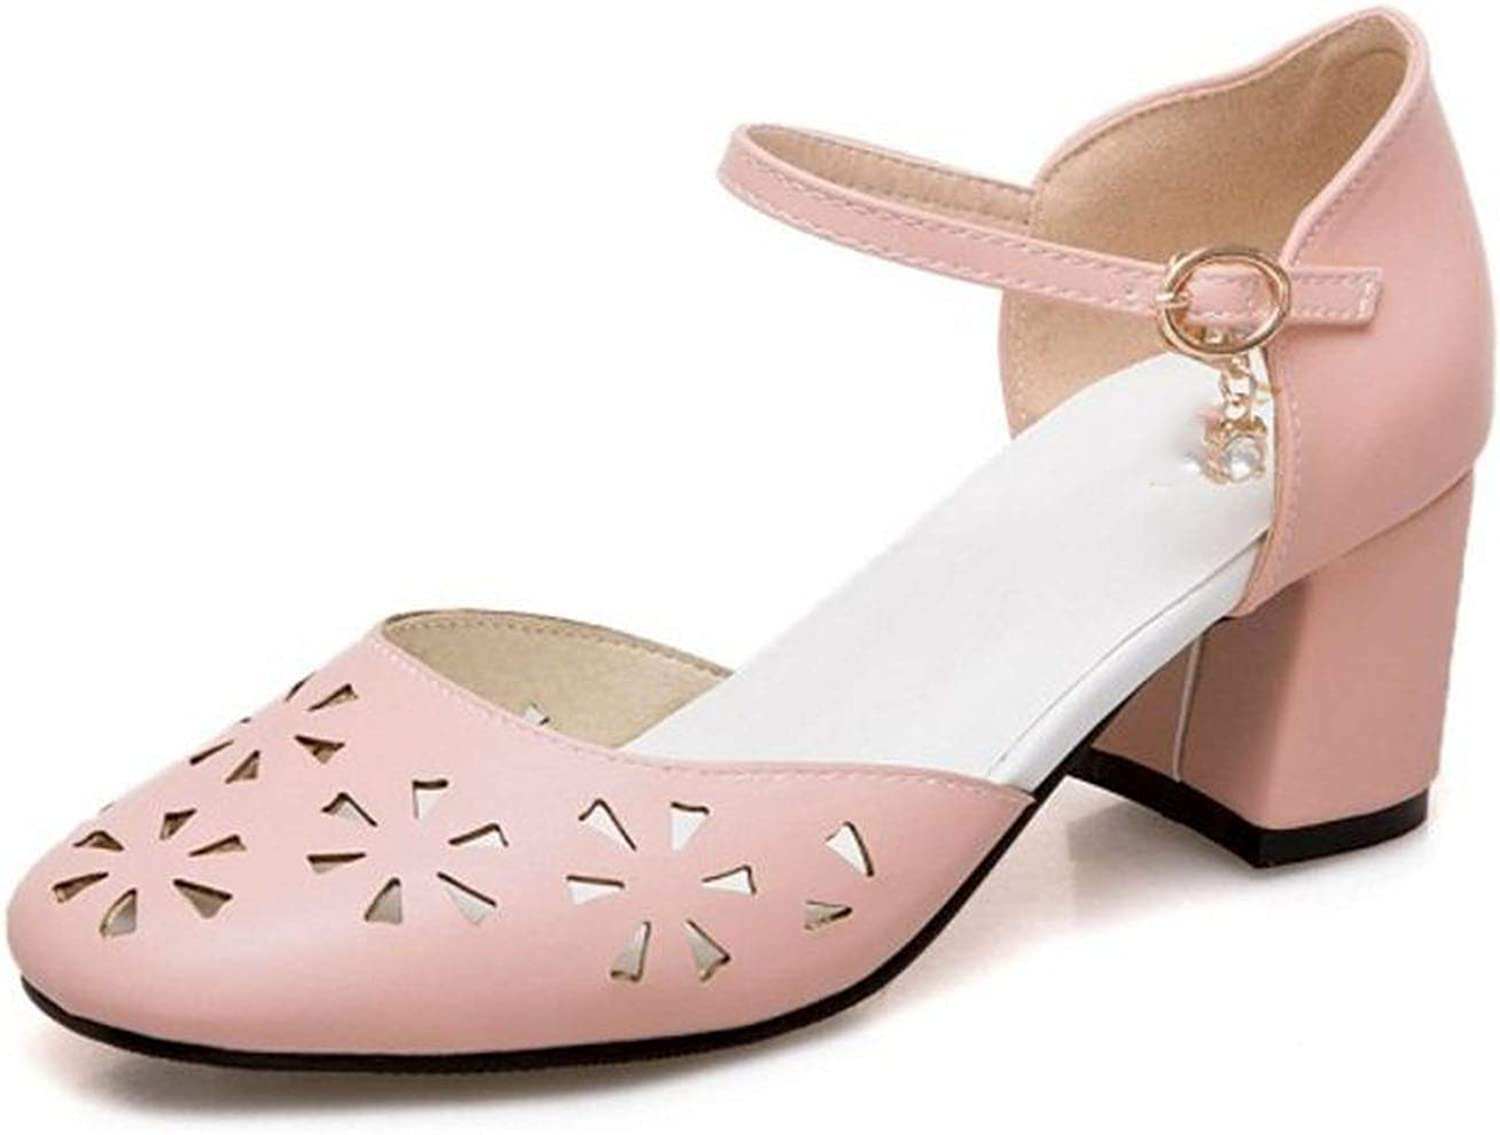 Size 32-52 Women High Heel Sandals Round Toe Buckle Thick Heel Women Summer shoes Hollow Out Sweety for Party shoes,Pink,11.5